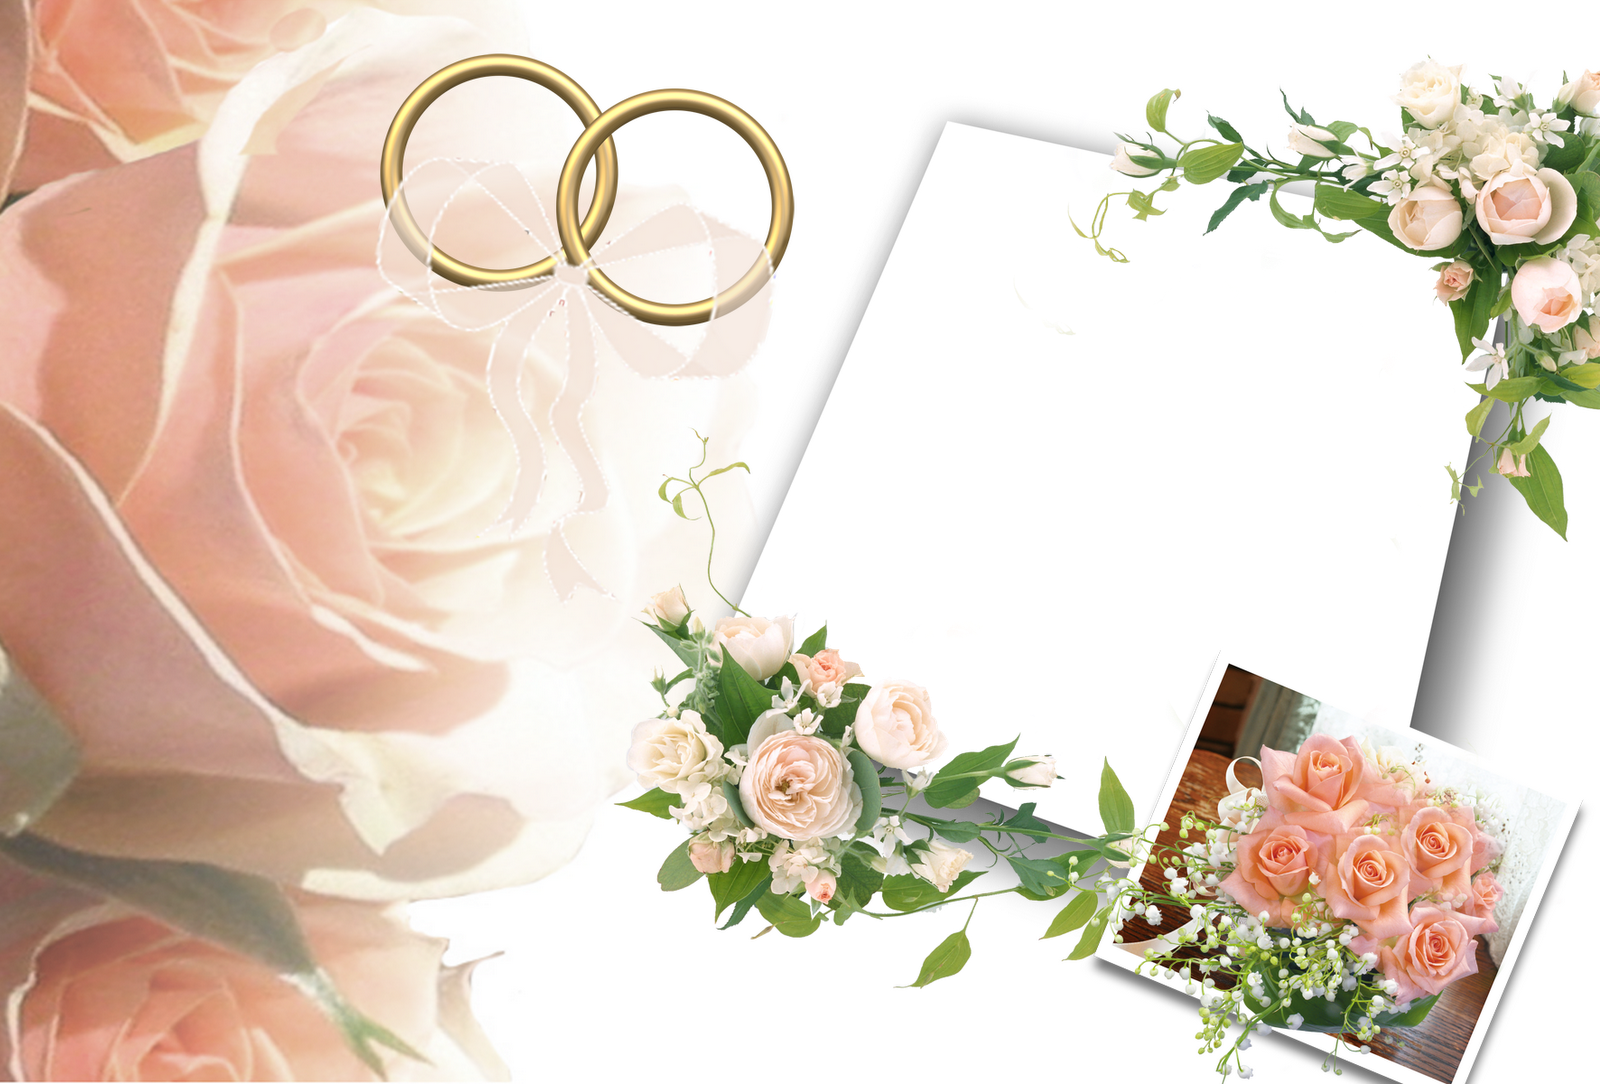 Wedding Background Images Png - Pin by Laura Parrault on wedding in 2019 | Wedding greetings ...